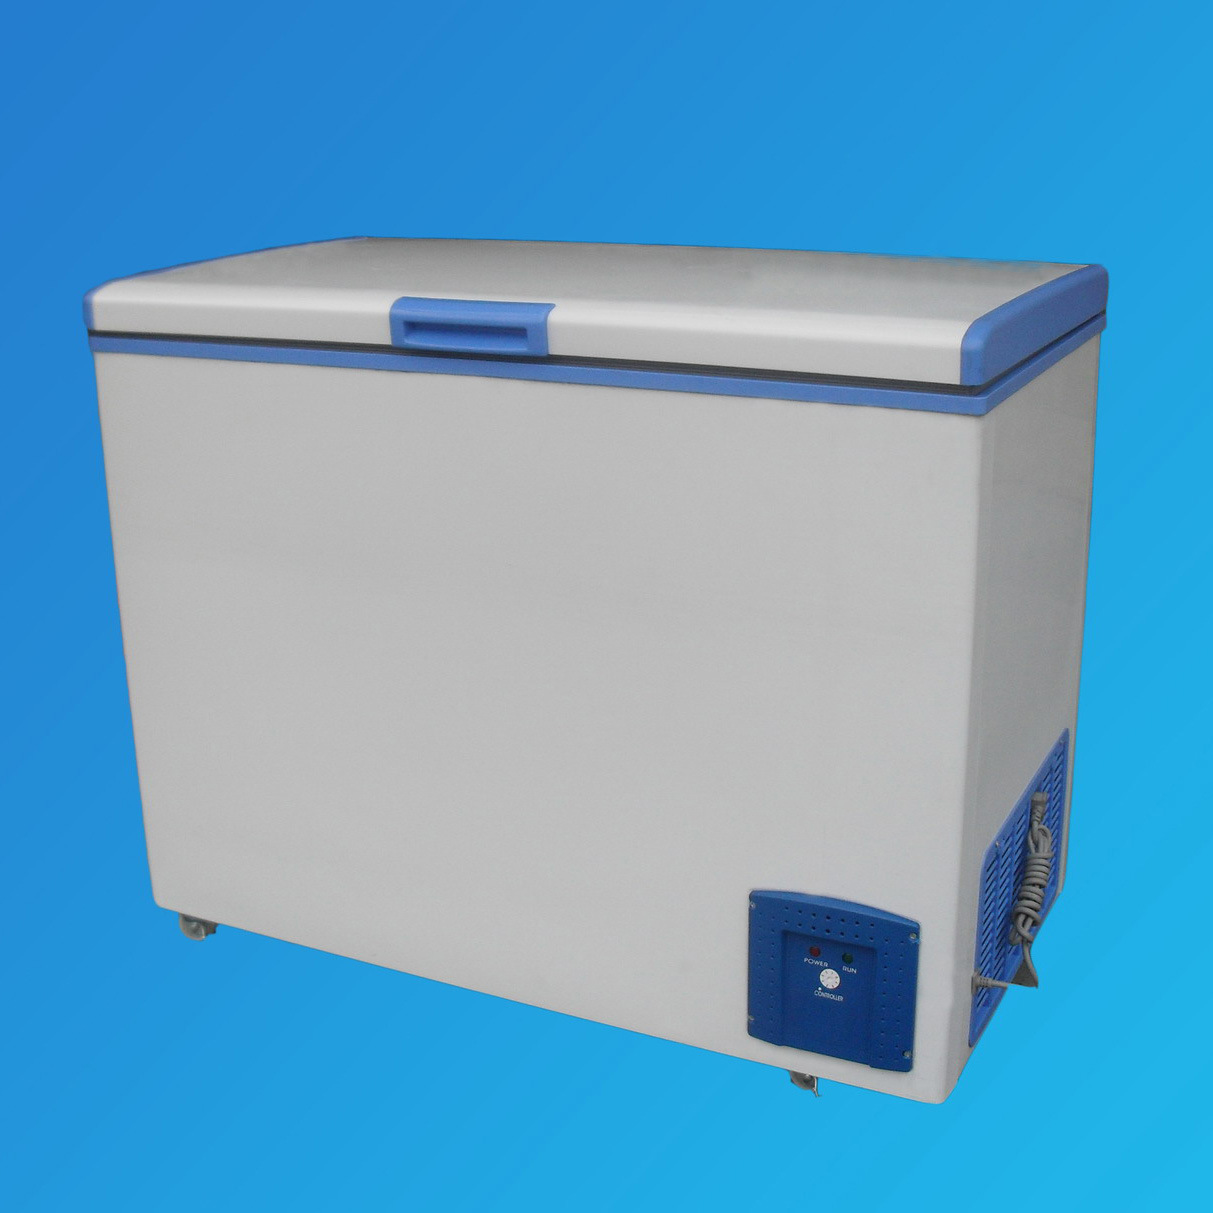 Energy Freezer, a+++ Freezer Bd-210